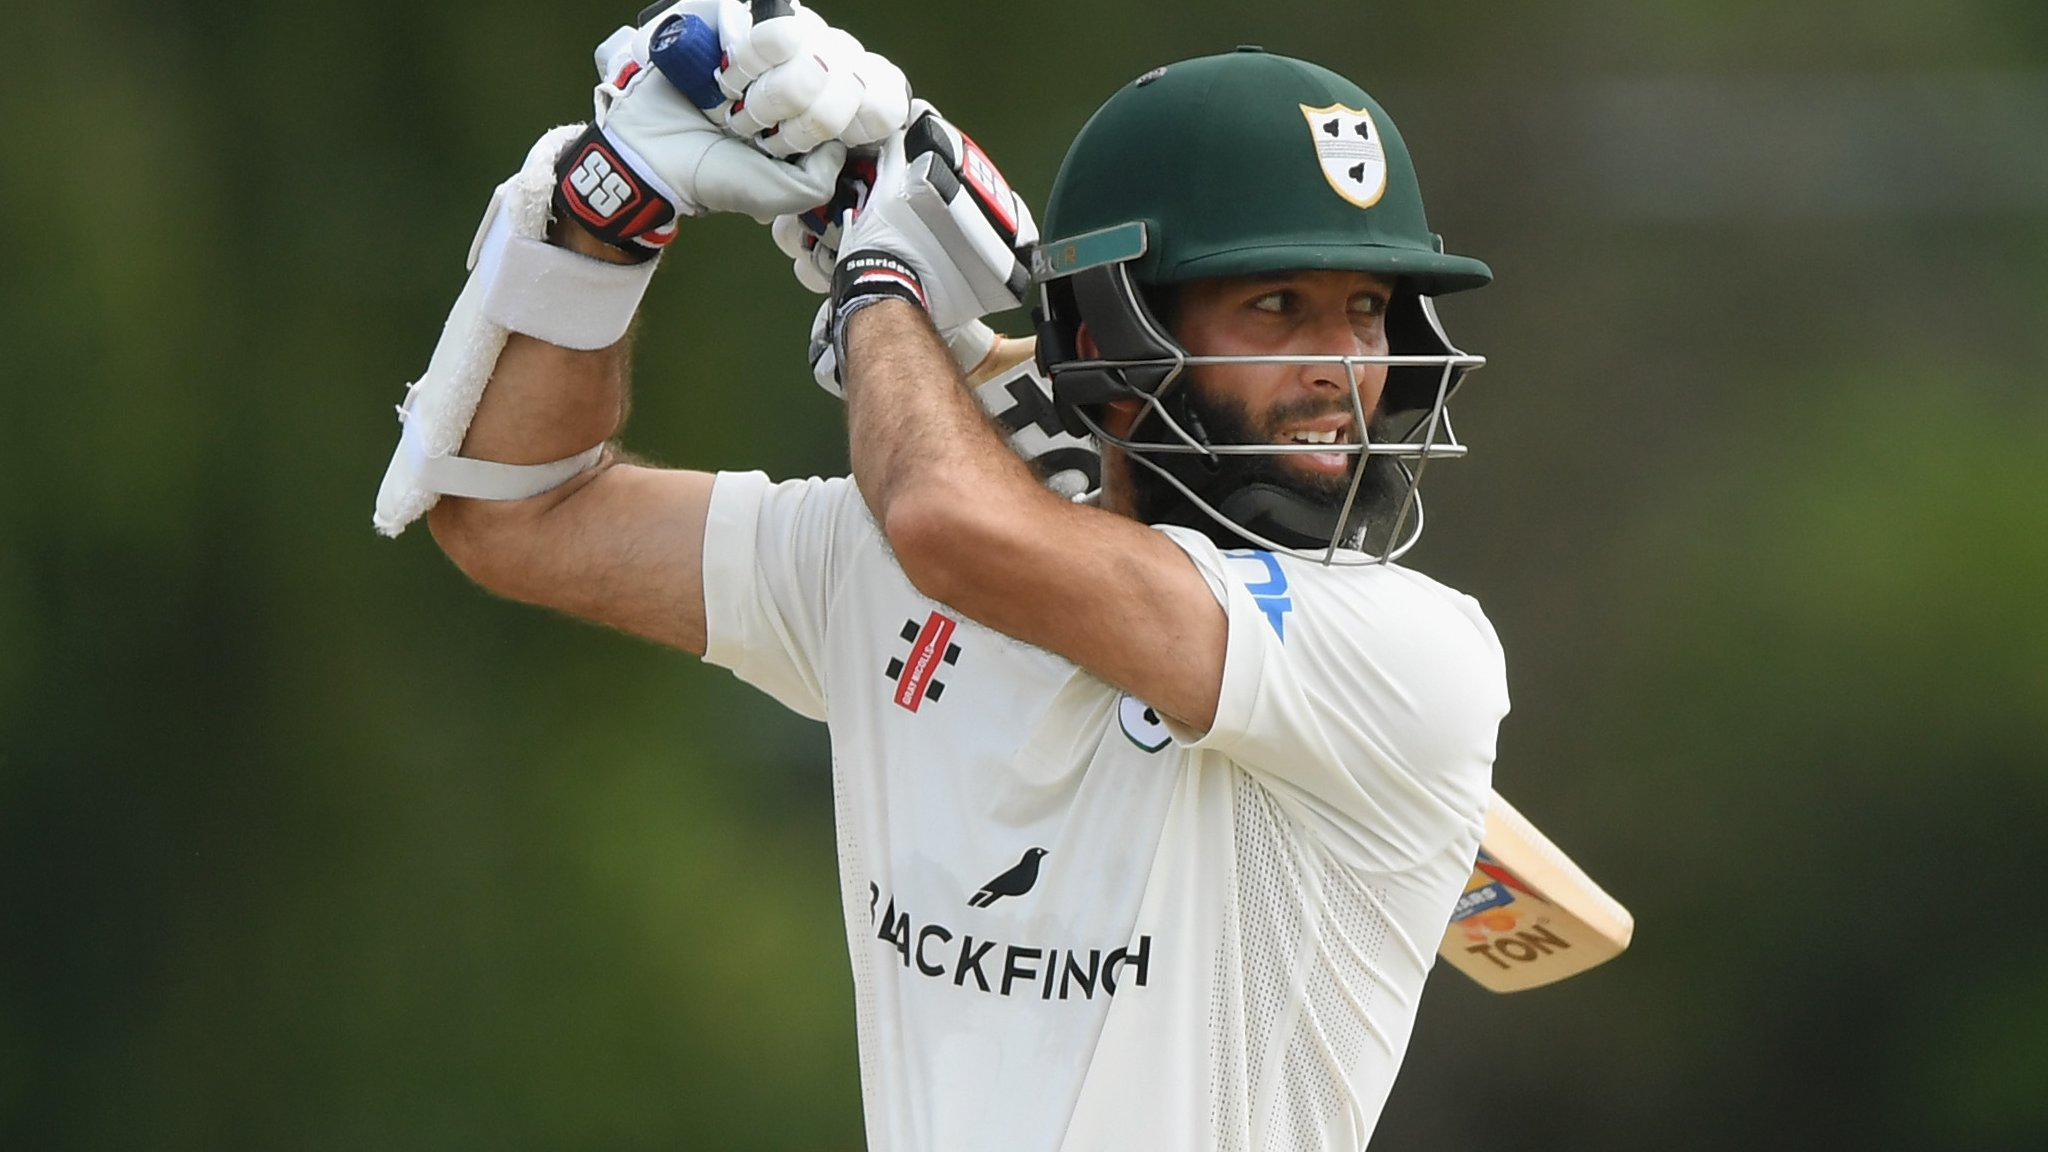 County Championship: Moeen Ali makes 219, then takes 4-35 against Tykes